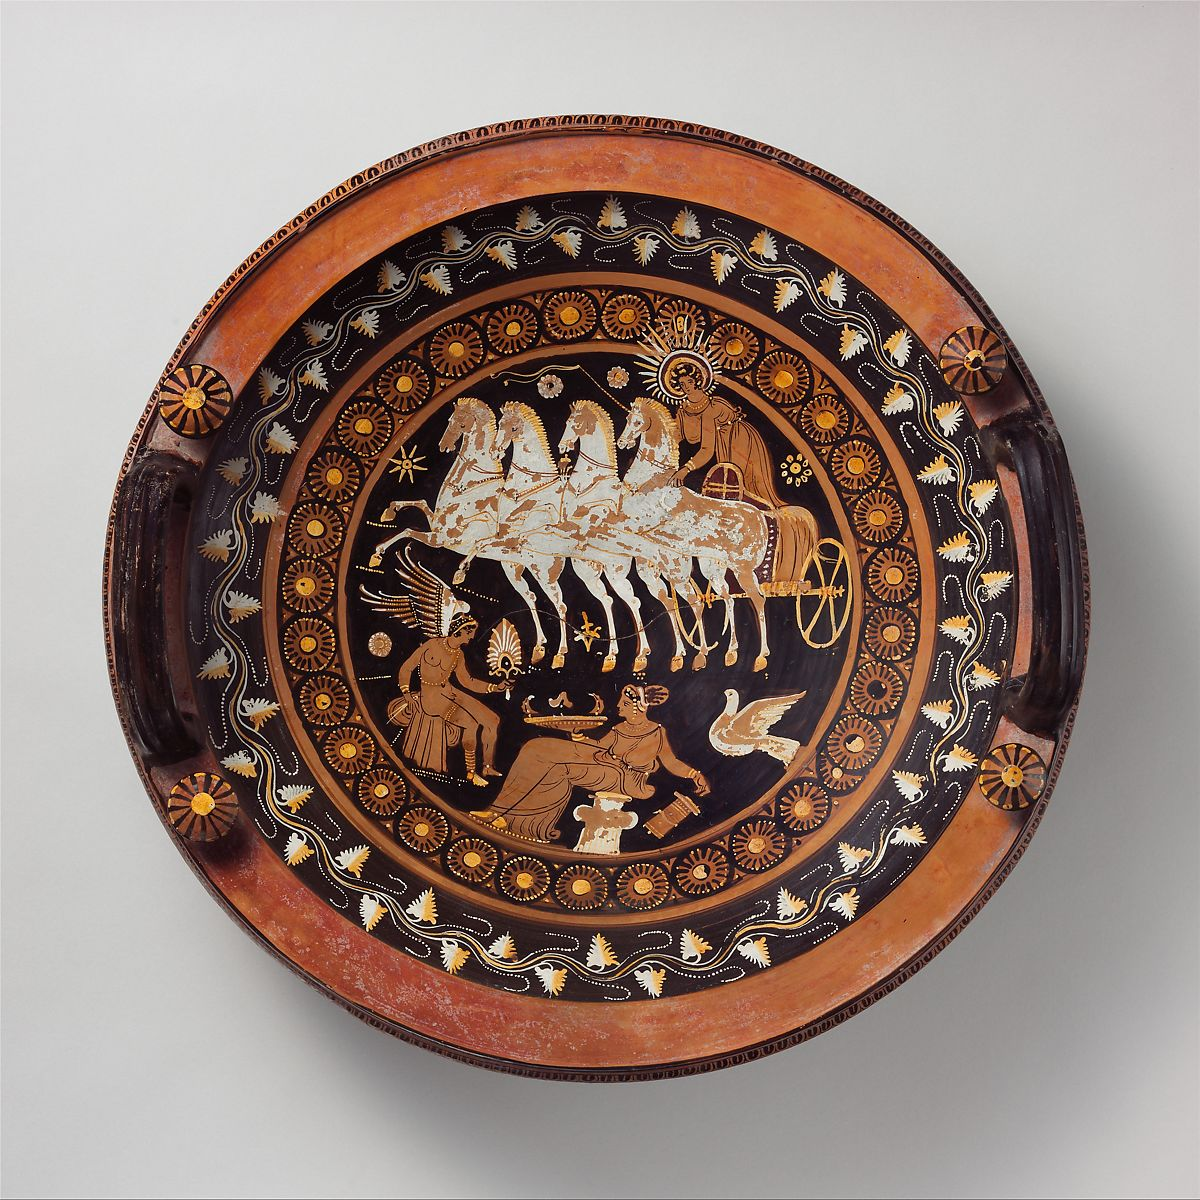 Attributed to the Stuttgart Group | Terracotta lekanis (dish) | Greek, South Italian, Apulian | Late Classical | The Met